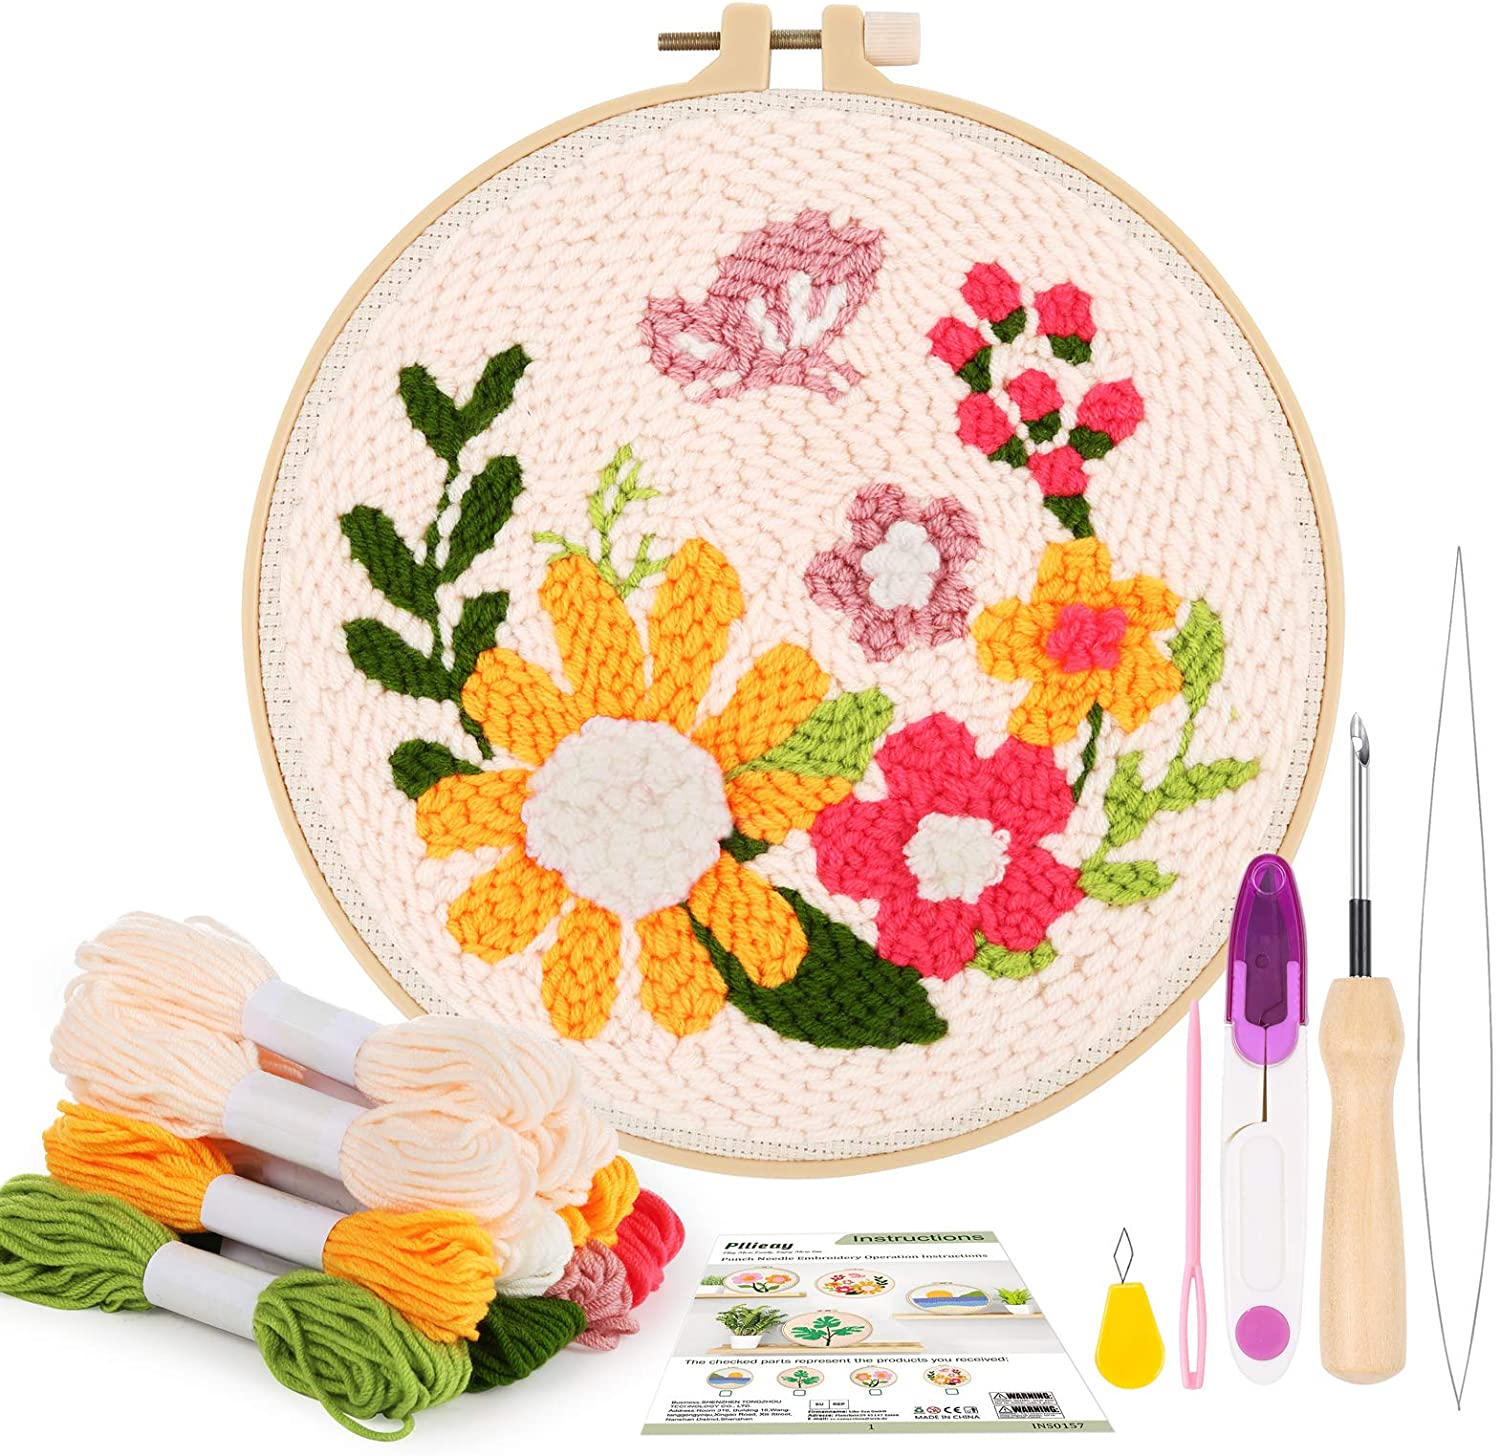 Easy to Use Looks Like Embrodiery Punch Needle Tool with Included Threader For Fine Detail and Designs